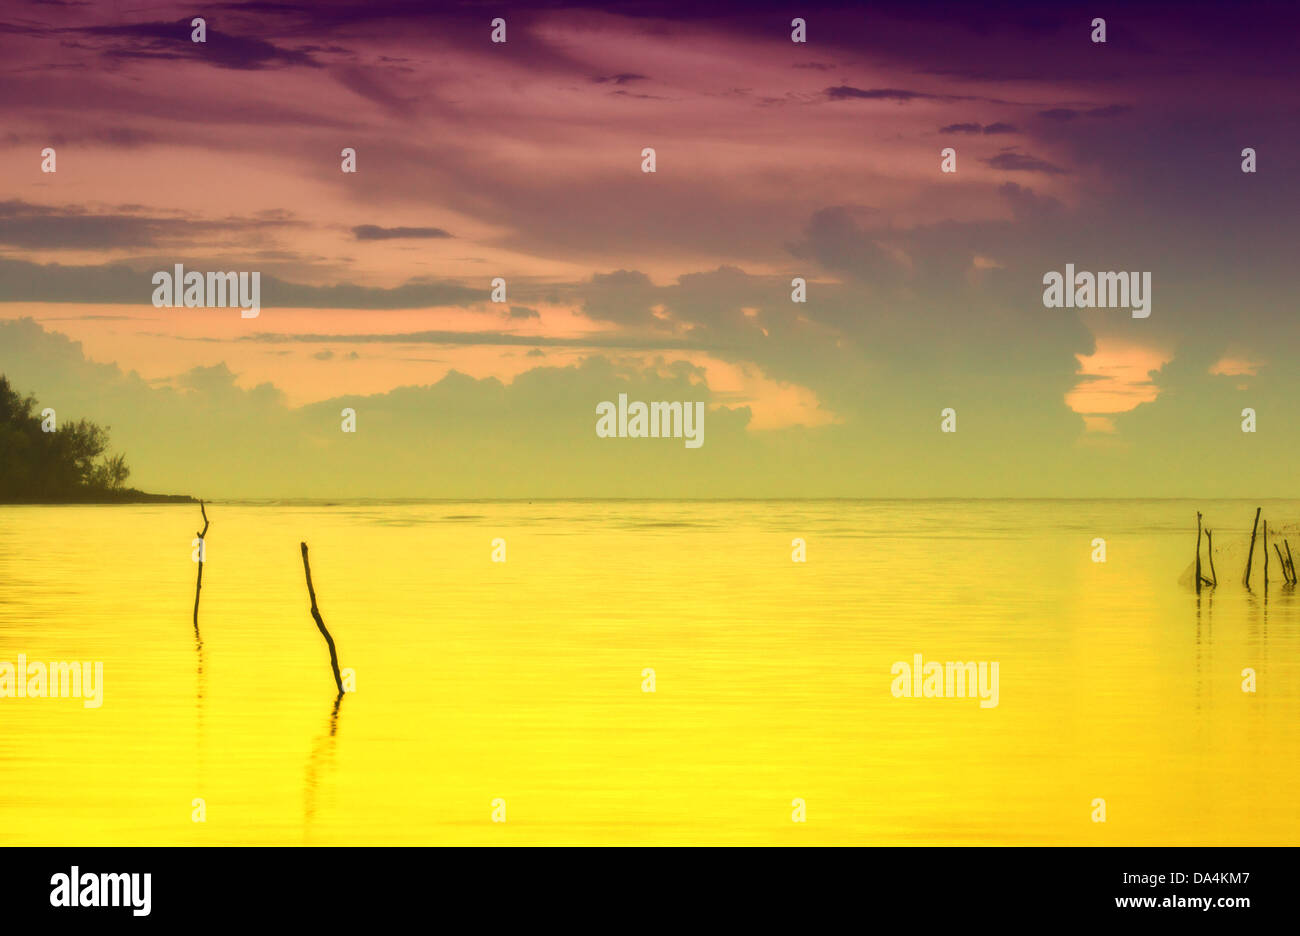 Sunset in Vanuatu with golden sea - Stock Image